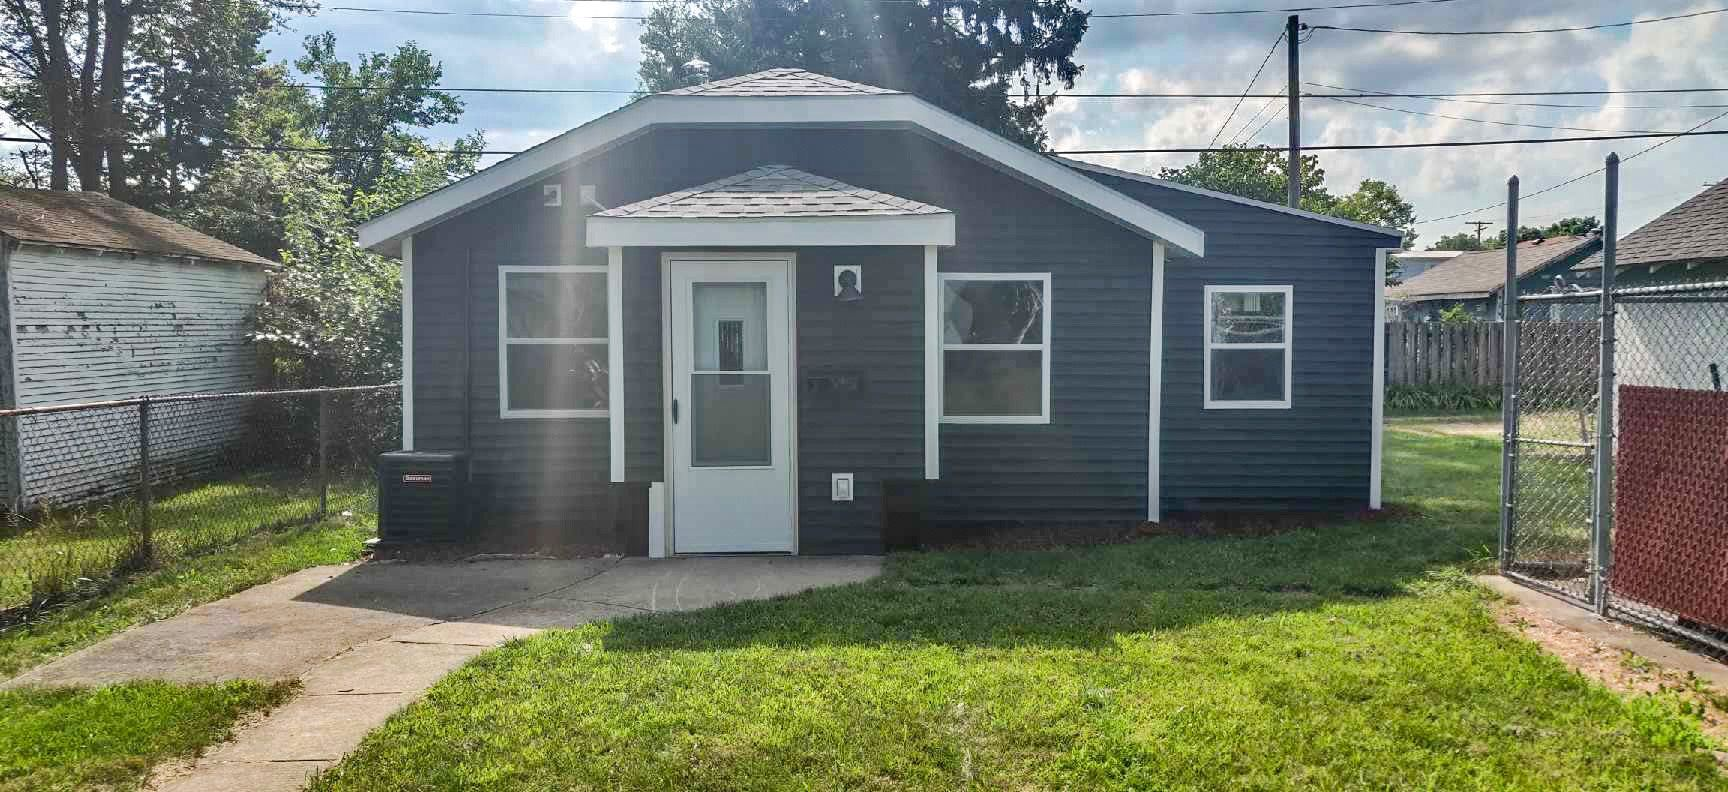 745 S 26th Street, South Bend, IN 46615 - #: 202029587